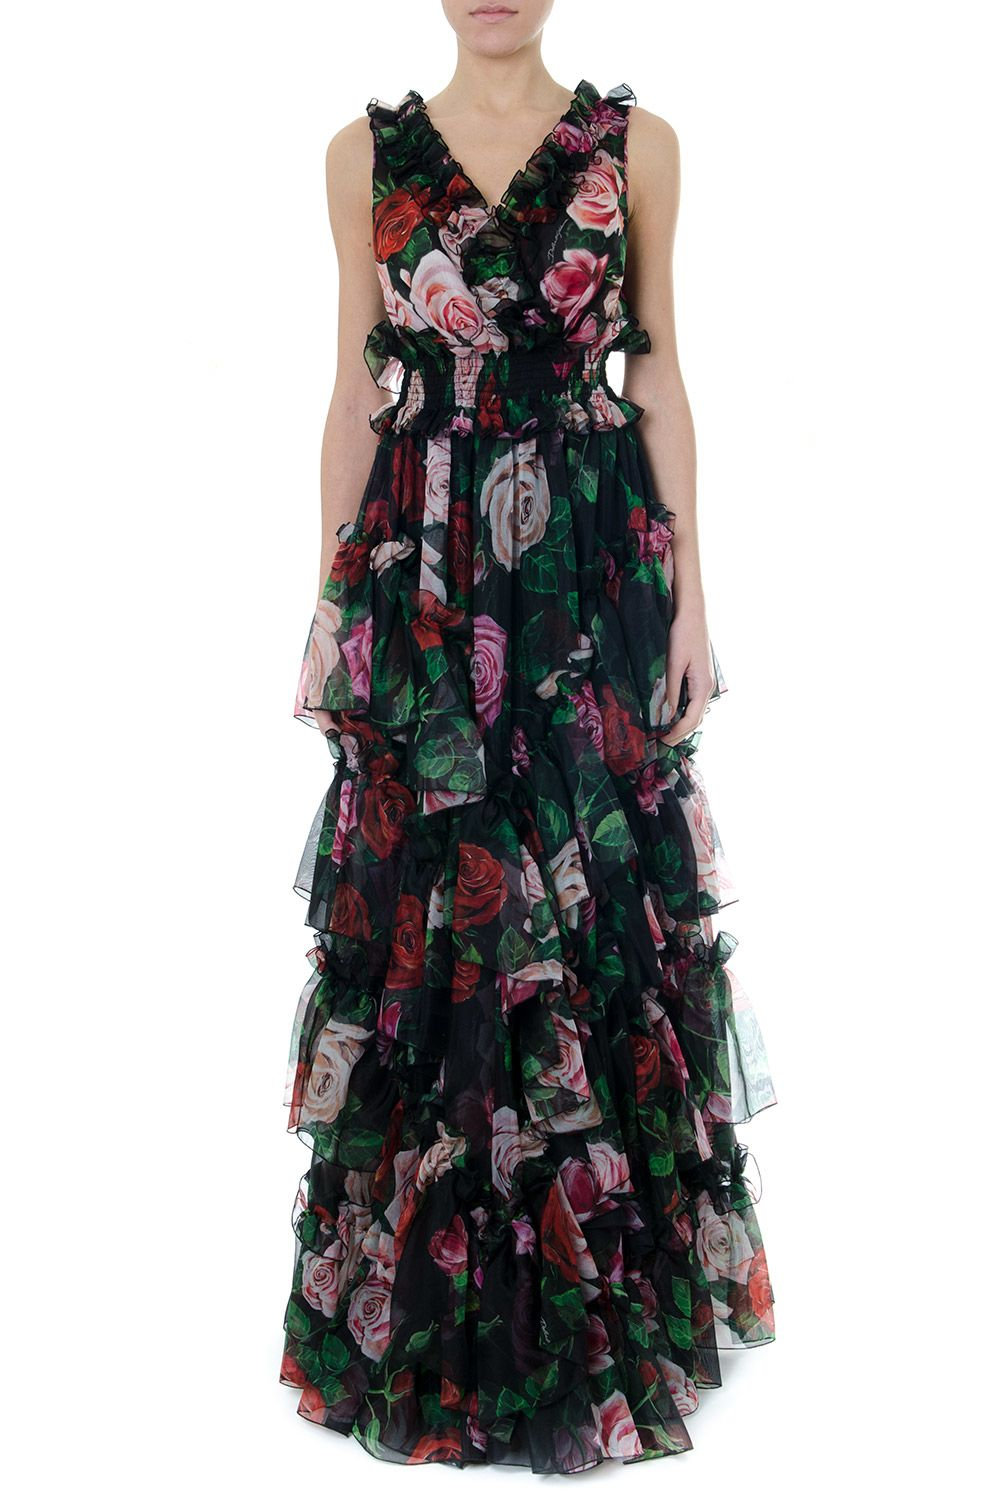 Dolce & Gabbana Multicolor Silk Roses Print Dress